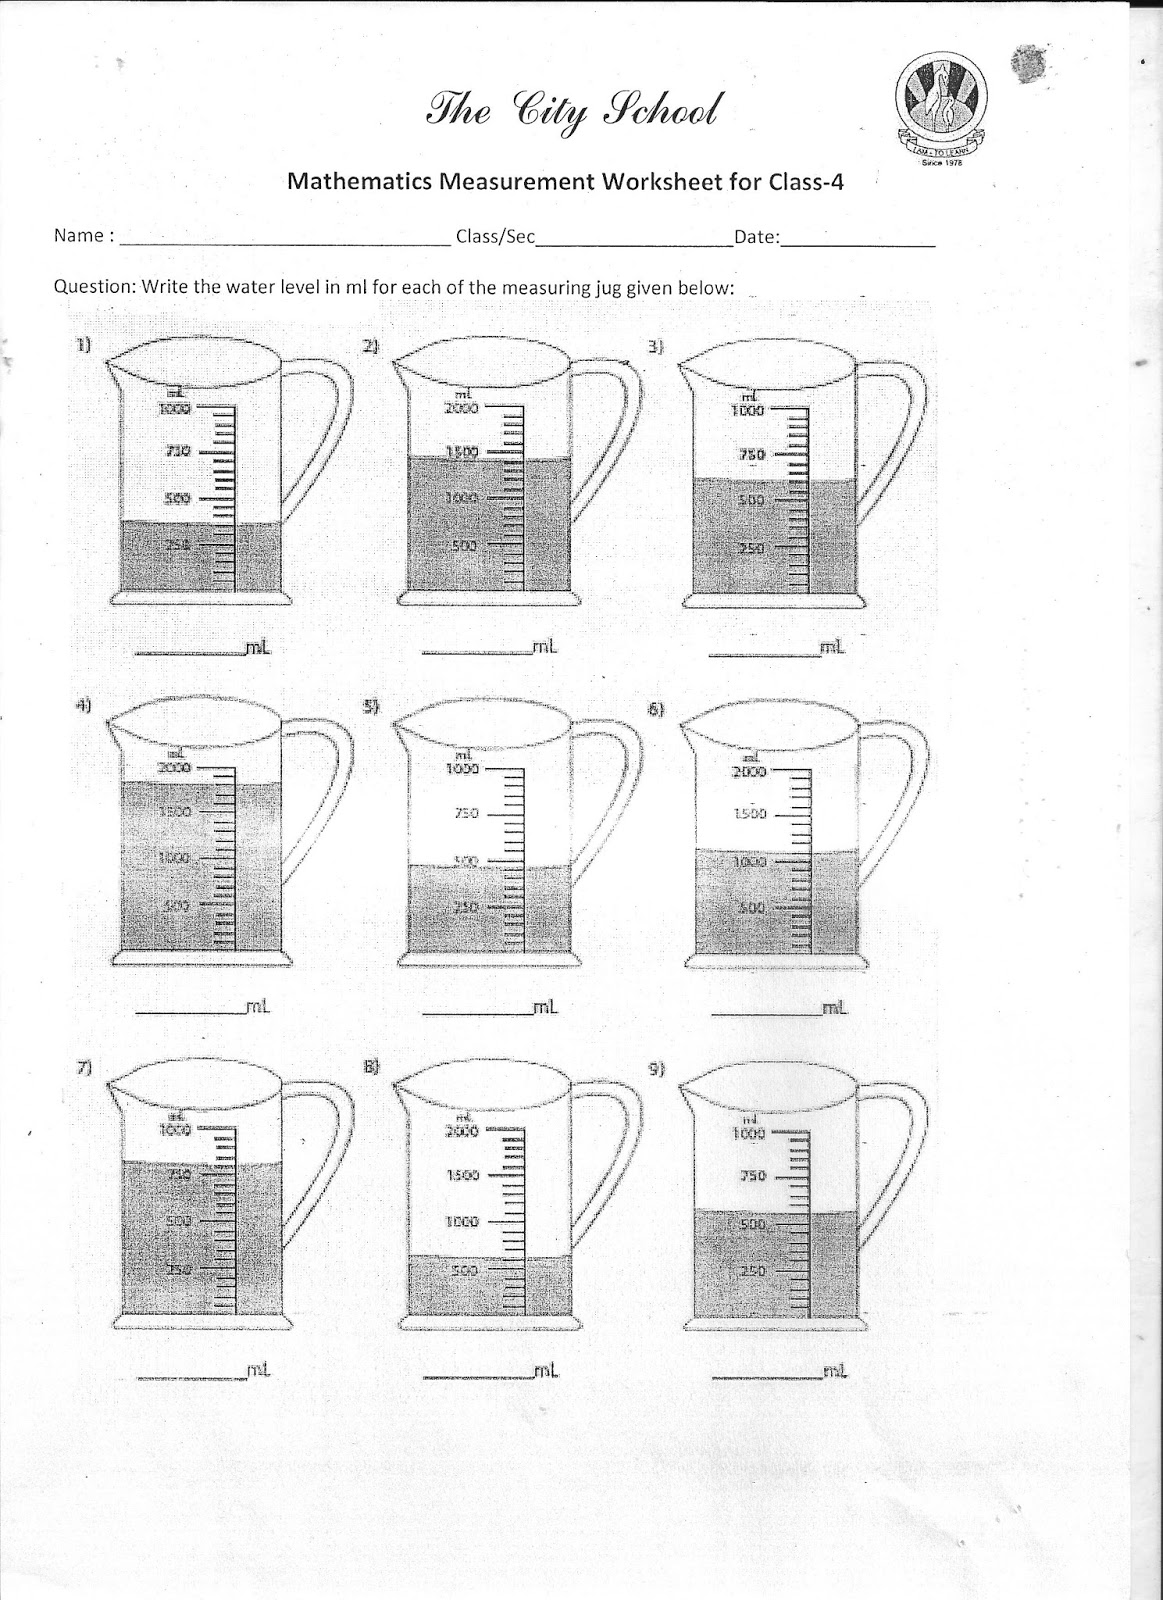 The City School Worksheet For Class